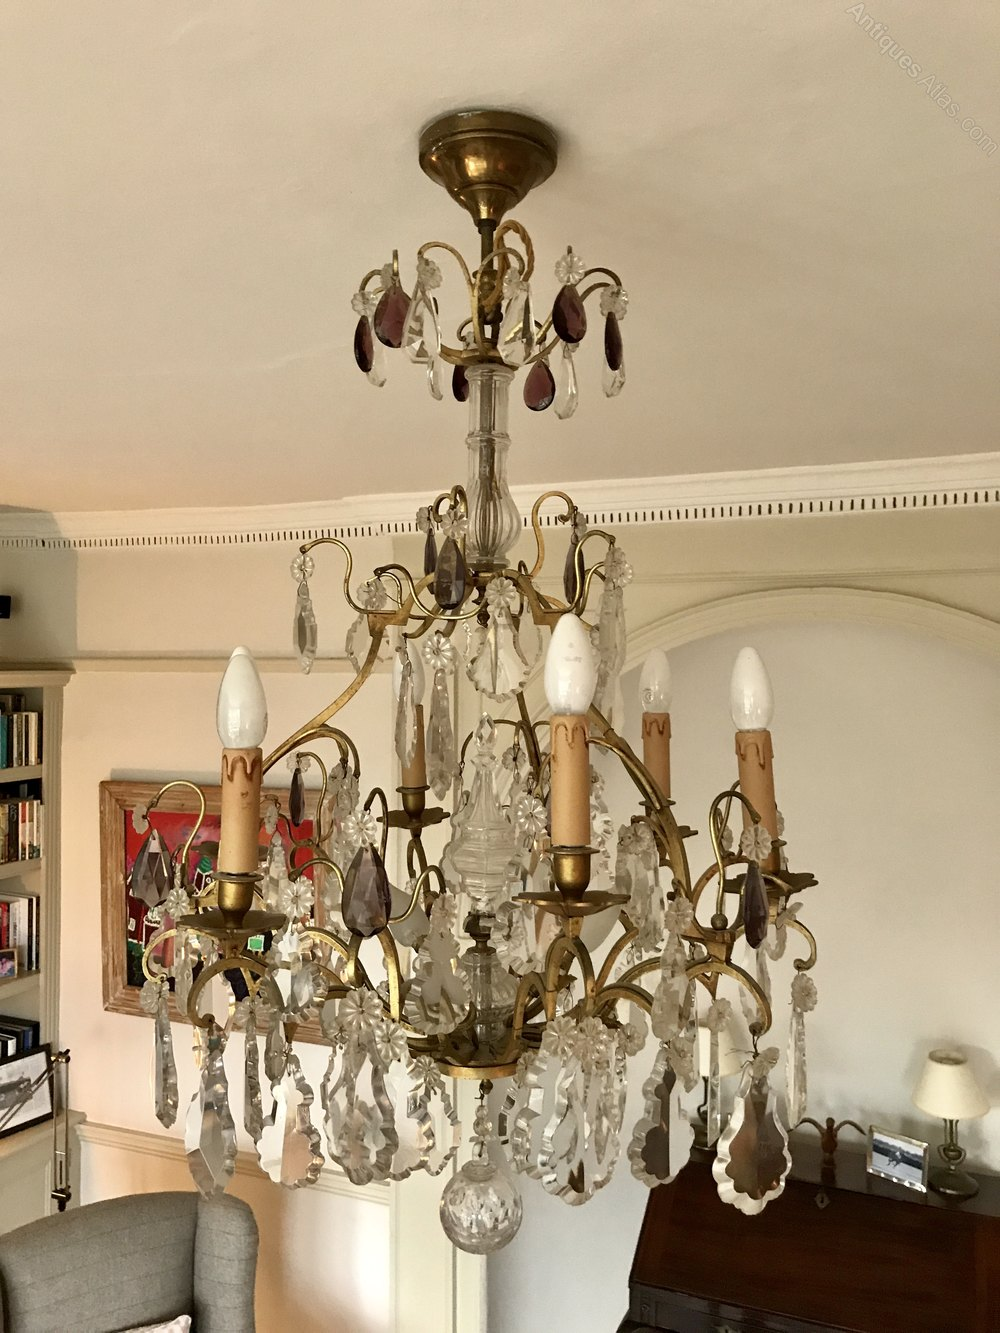 French chandeliers flemish chandeliers this is a excellent quality antique french chandelier the frame retains its original gilding and holds the original good quality crystal drops aloadofball